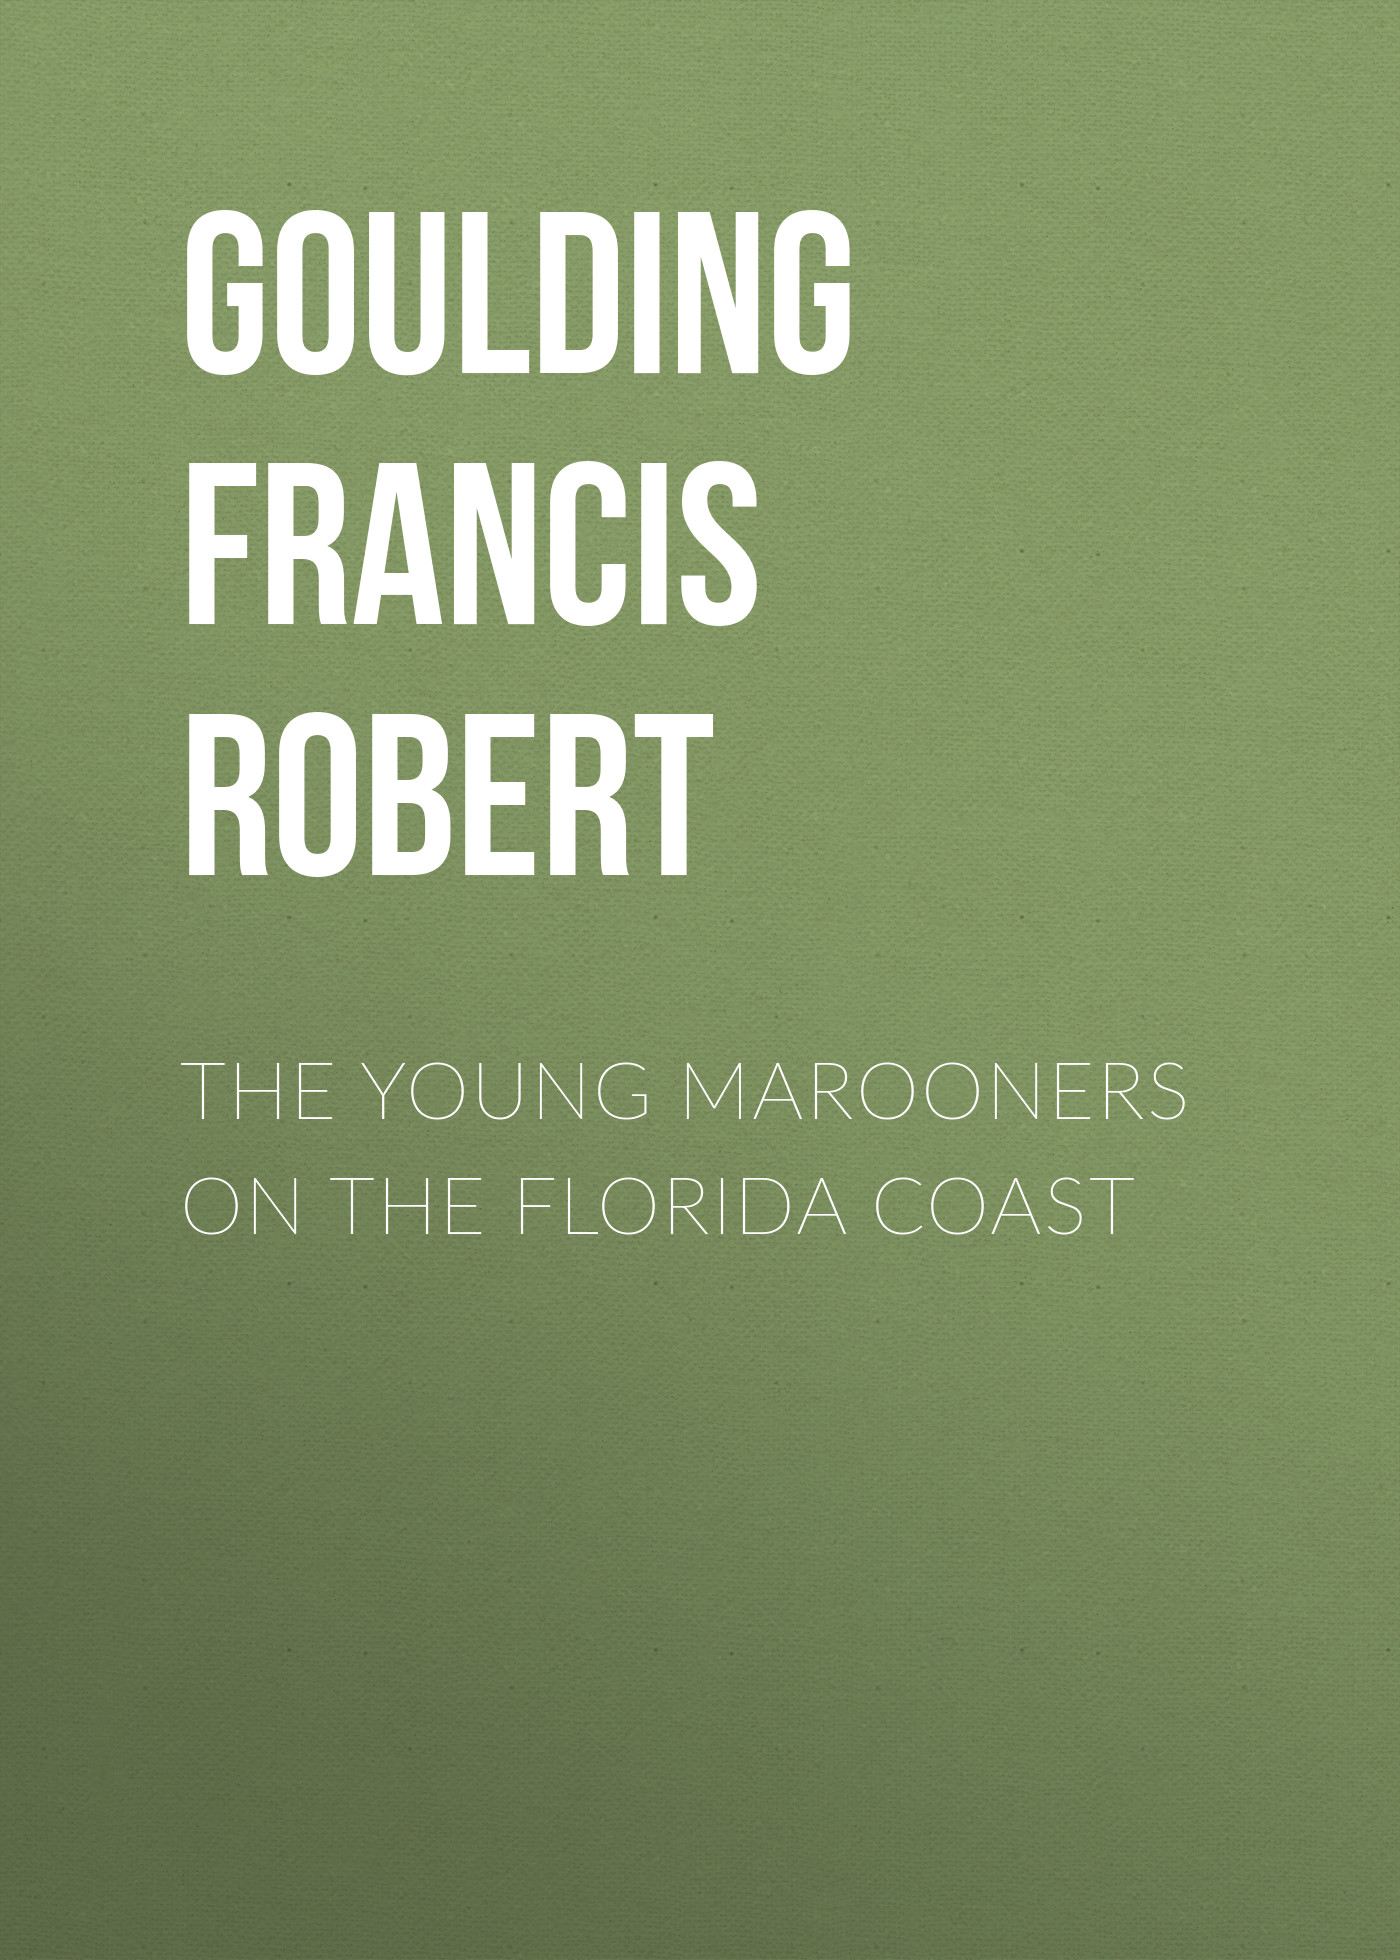 Goulding Francis Robert The Young Marooners on the Florida Coast bridges robert on english homophones